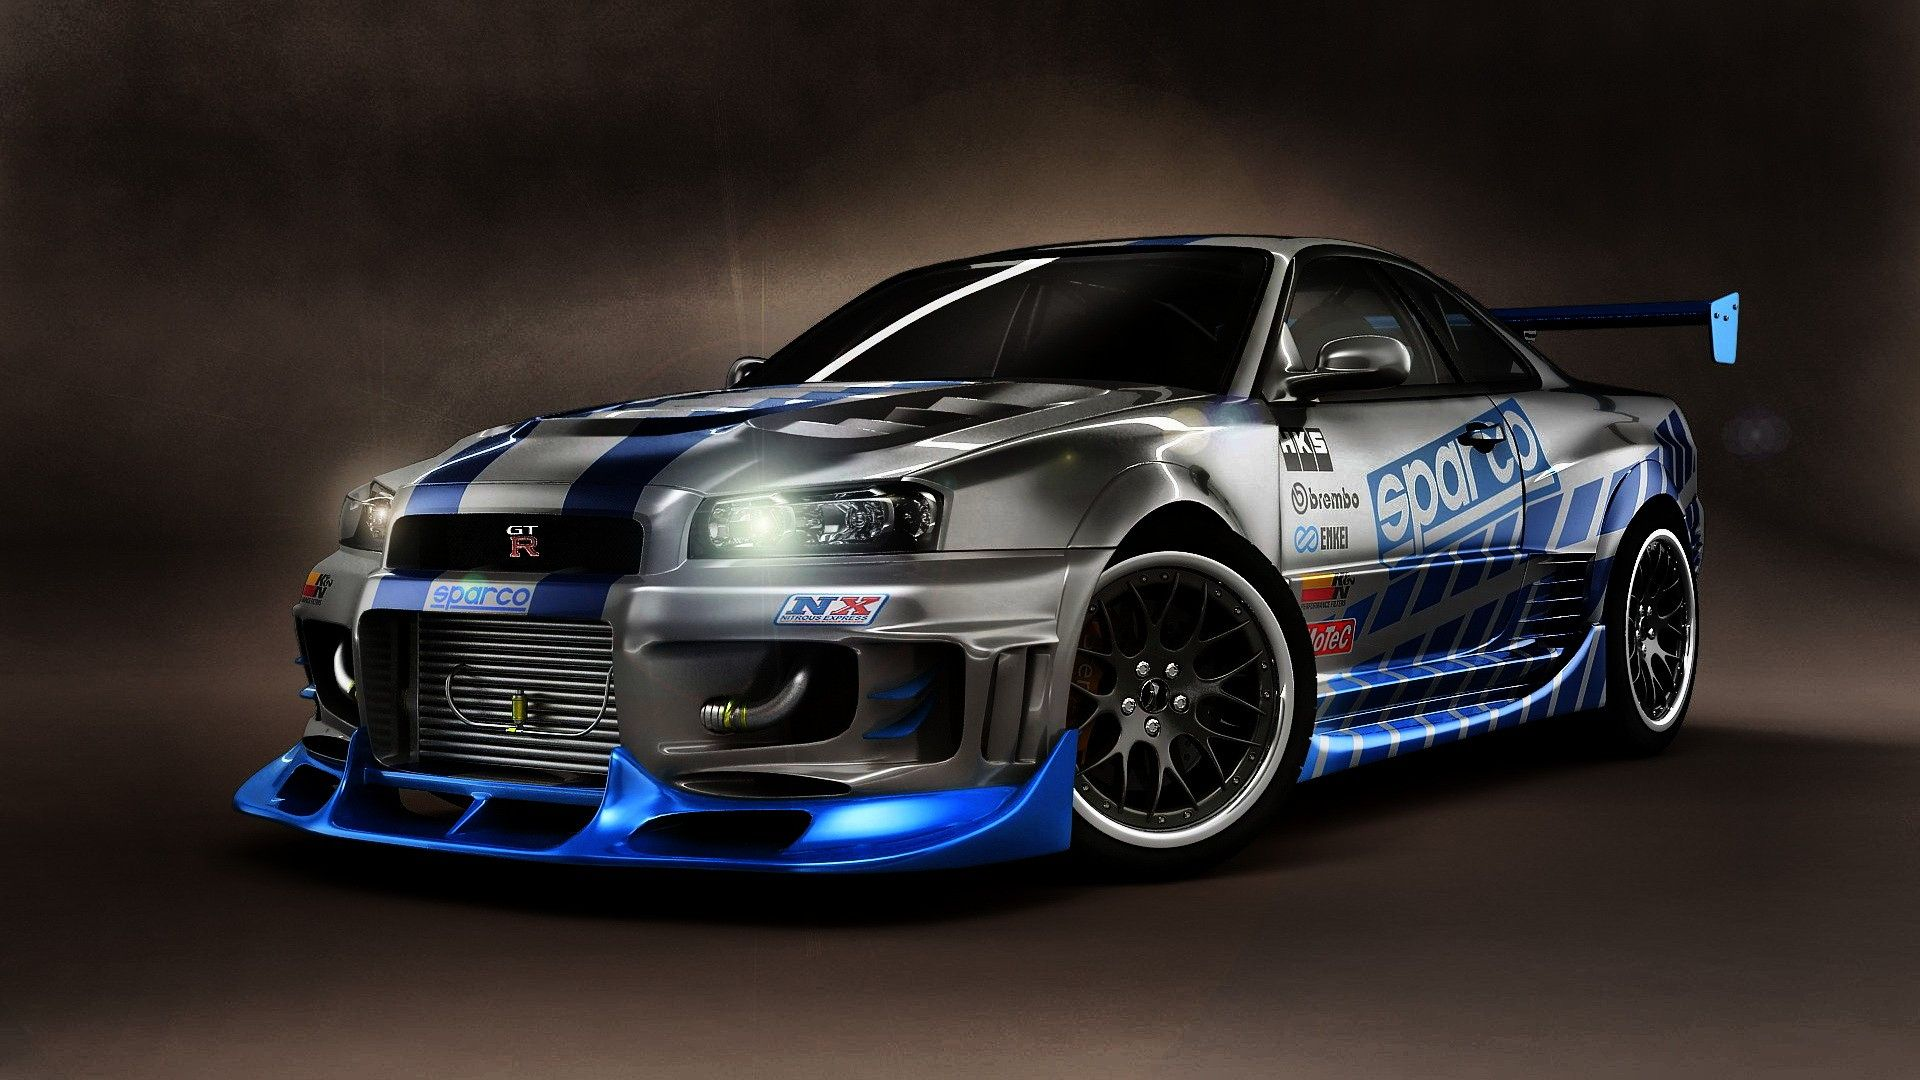 Nissan skyline gtr this might feed my need for speed my life long desire to one day drive a race car